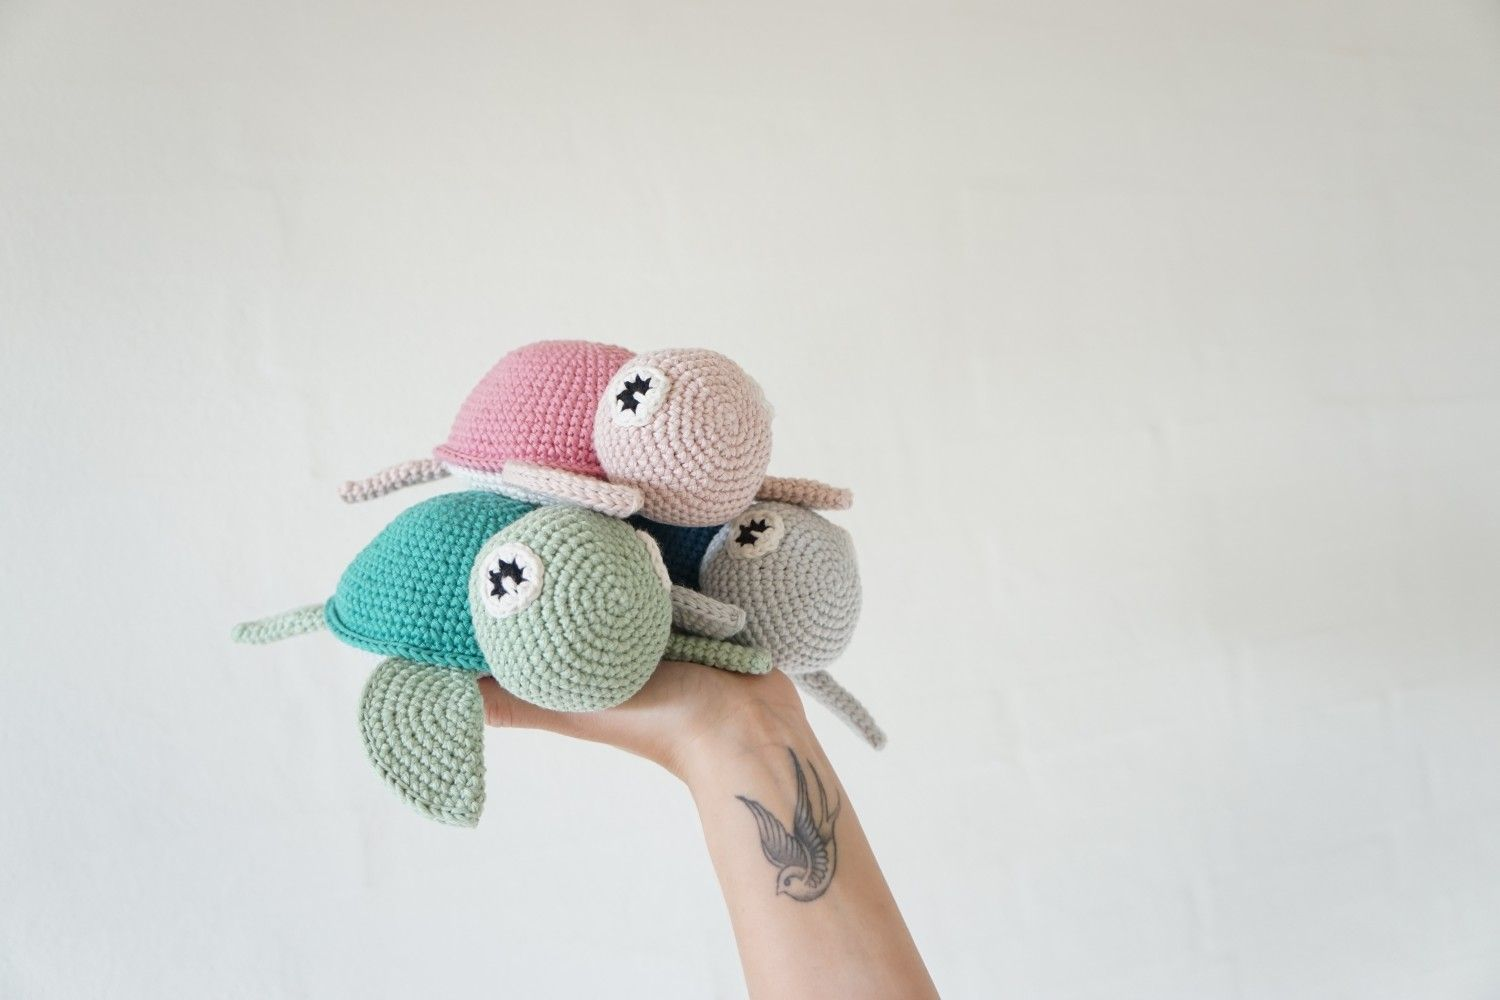 Turtle | Vibemai #crochetturtles